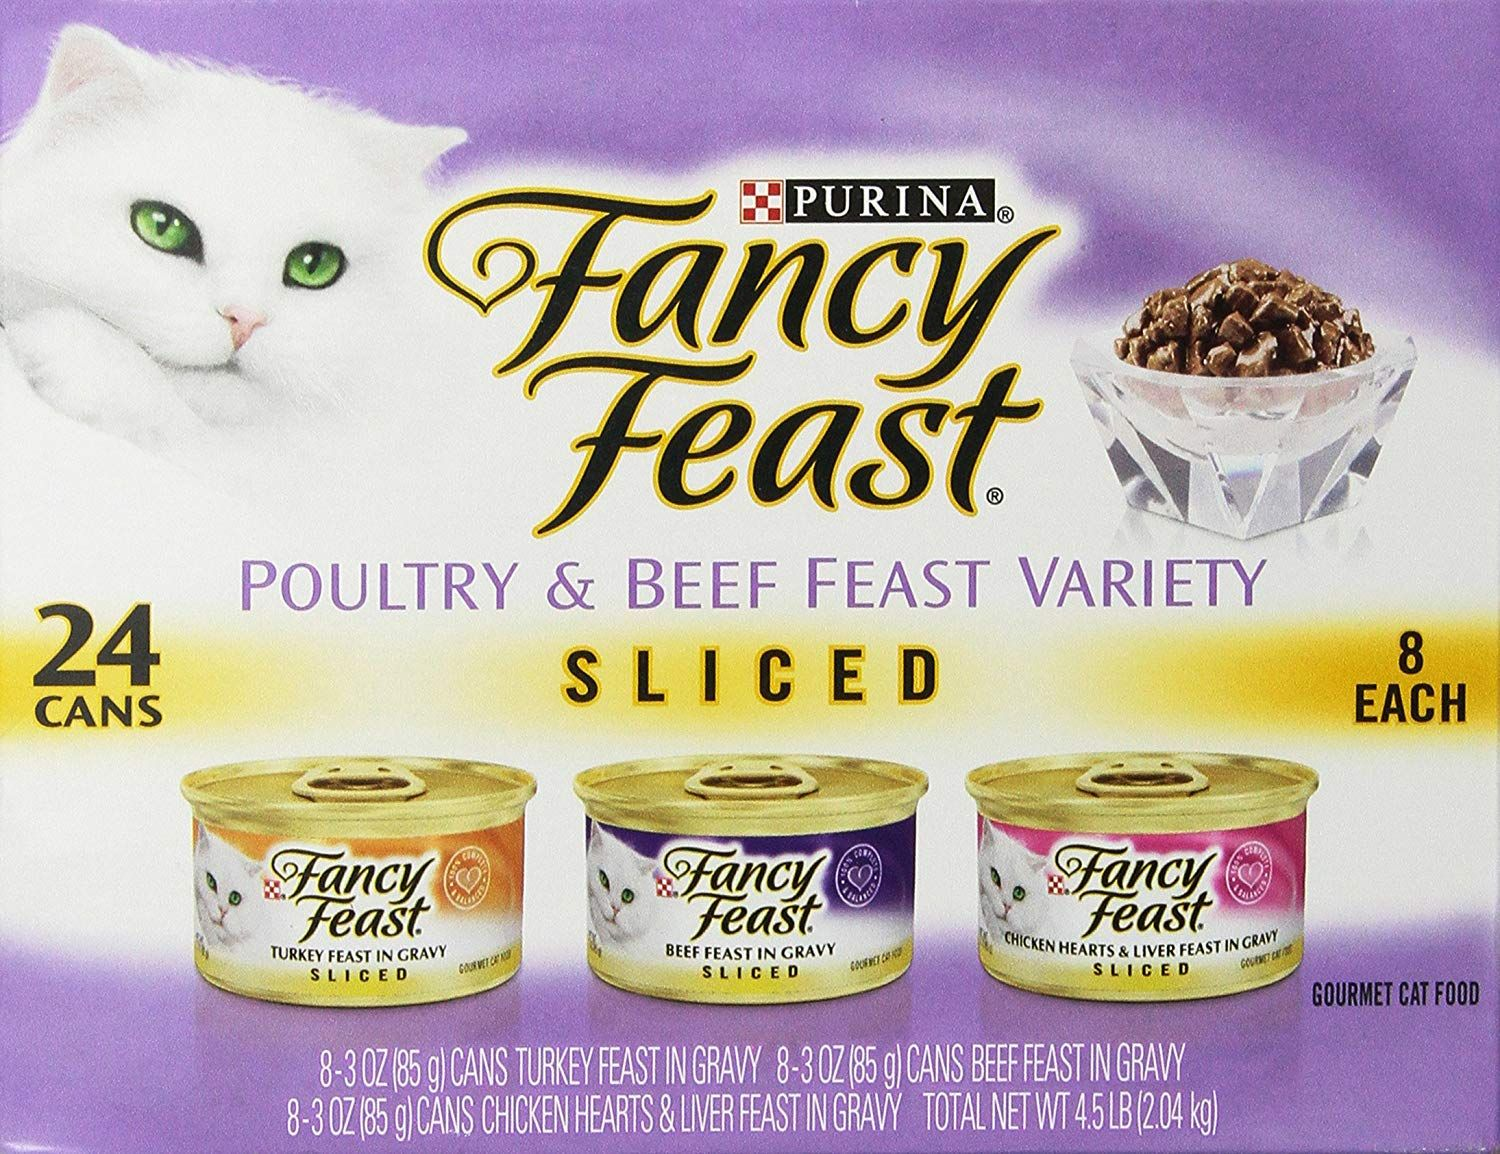 Purina Fancy Feast Sliced Poultry and Beef Variety Pack